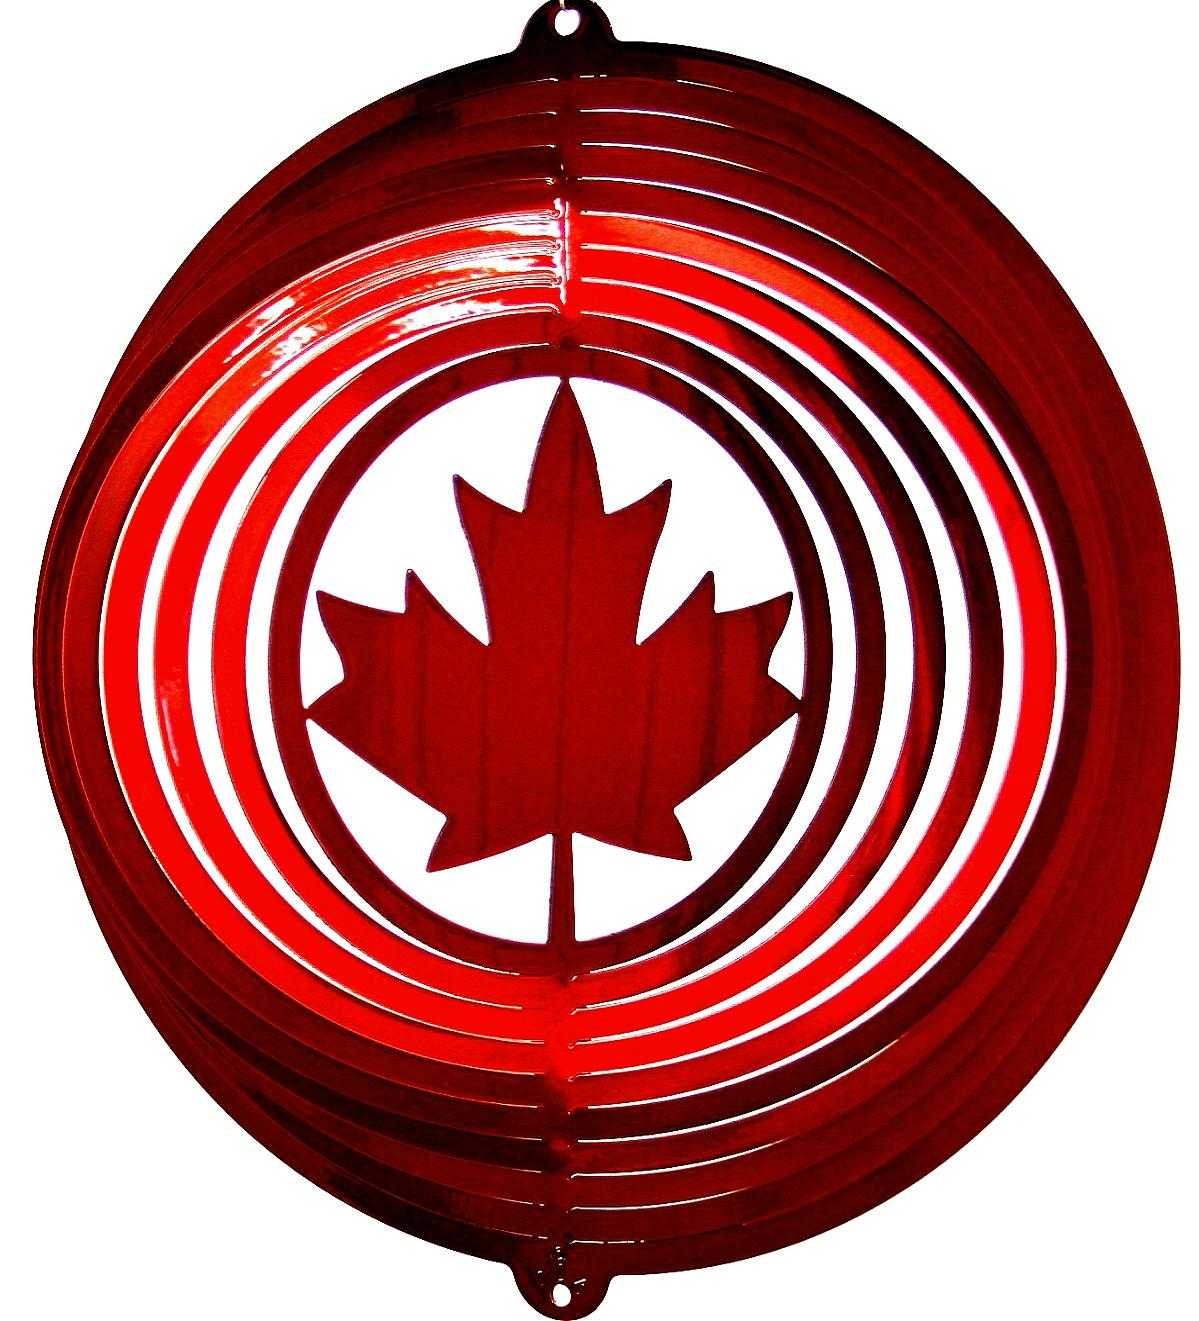 12 INCH MAPLE LEAF WIND SPINNER